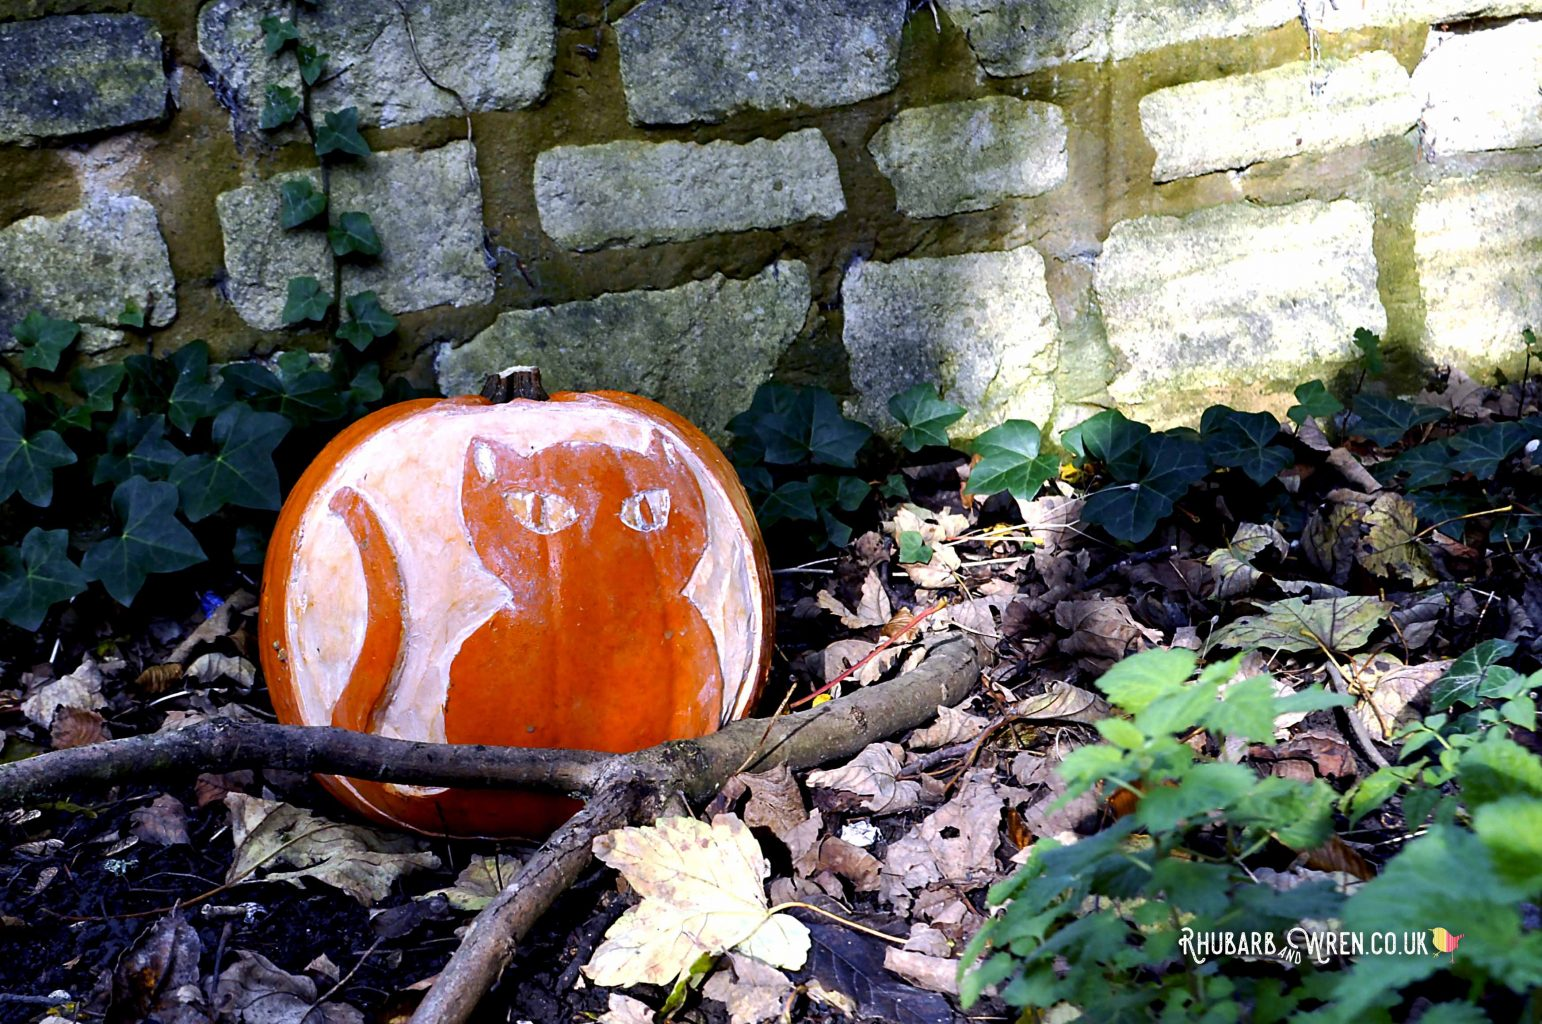 A cat carved on a pumpkin